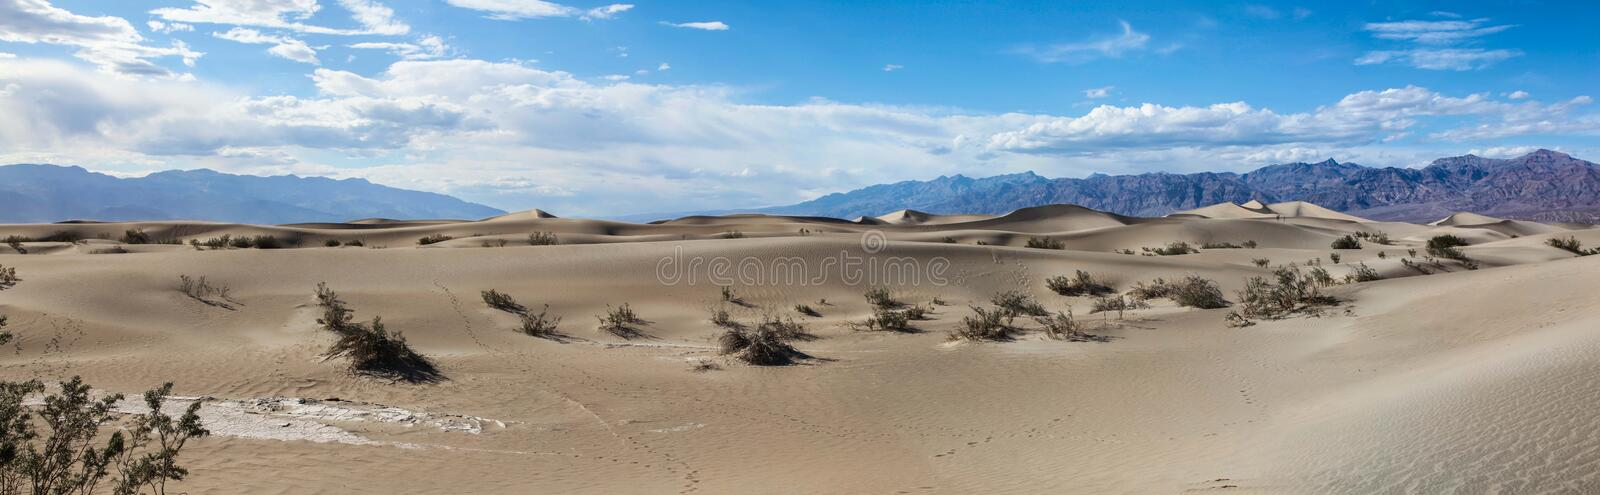 Panoramic view of the pristine sand of the Mesquite Flat Sand Dunes in Death Valley National Park stock photo